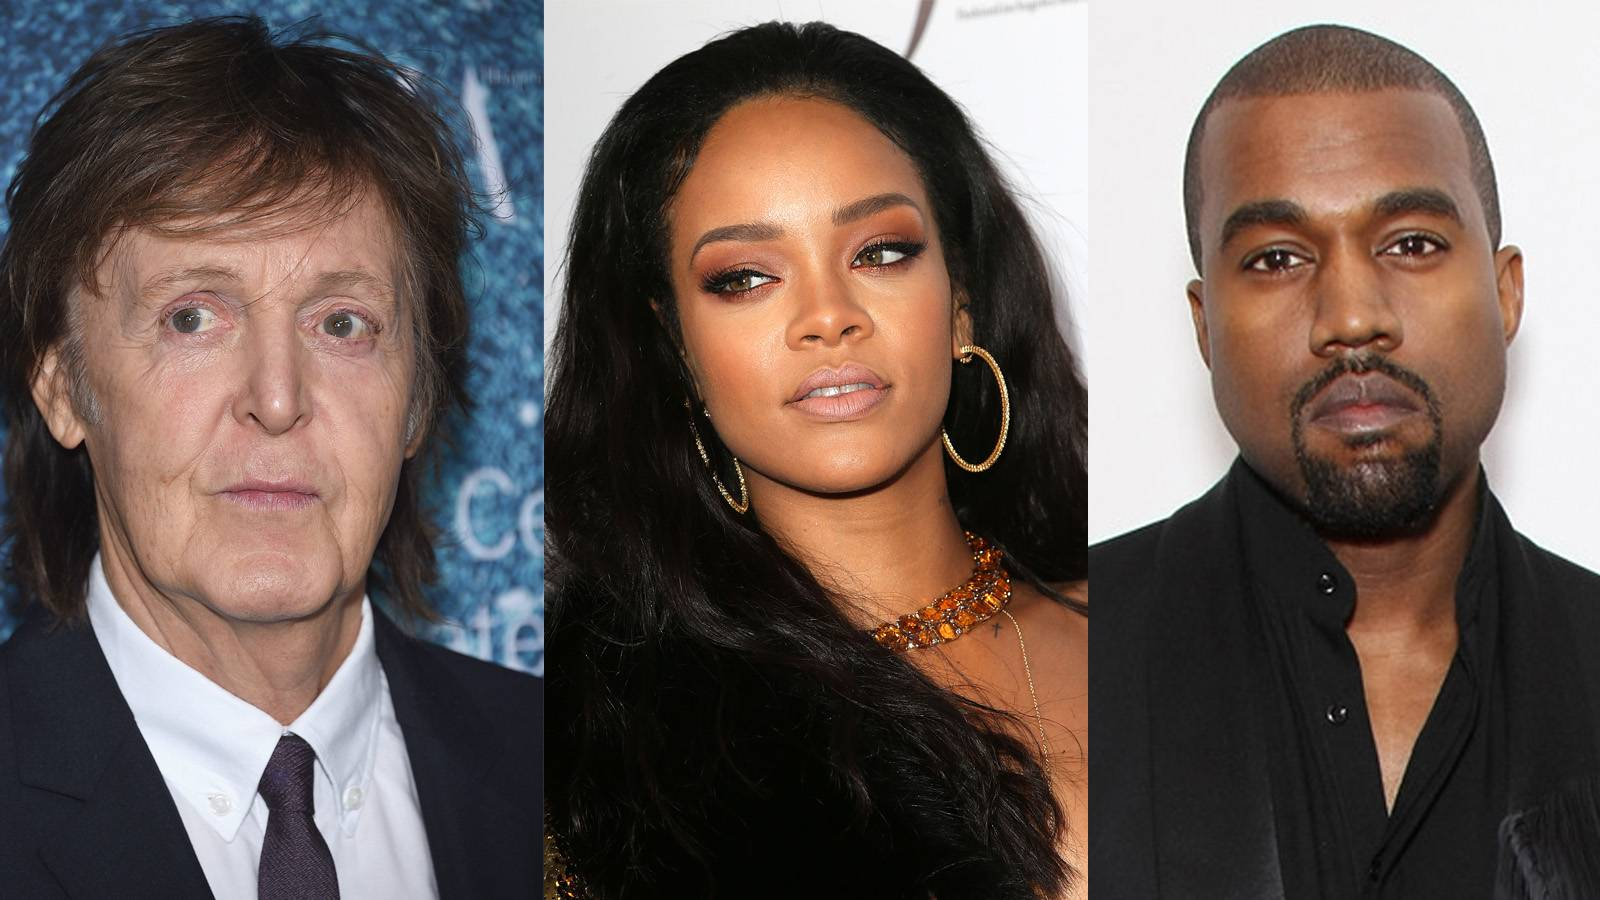 """New Music From an Unlikely Trio - Rihanna tapped Paul McCartney and Kanye West for a new song entitled """"FourFiveSeconds,"""" which she released over the weekend. The new music is part of her eighth studio album, due out some time first quarter. Listen here.  (Photos from left: Dimitrios Kambouris/Getty Images, Frederick M. Brown/Getty Images, Bennett Raglin/BET/Getty Images for BET)"""